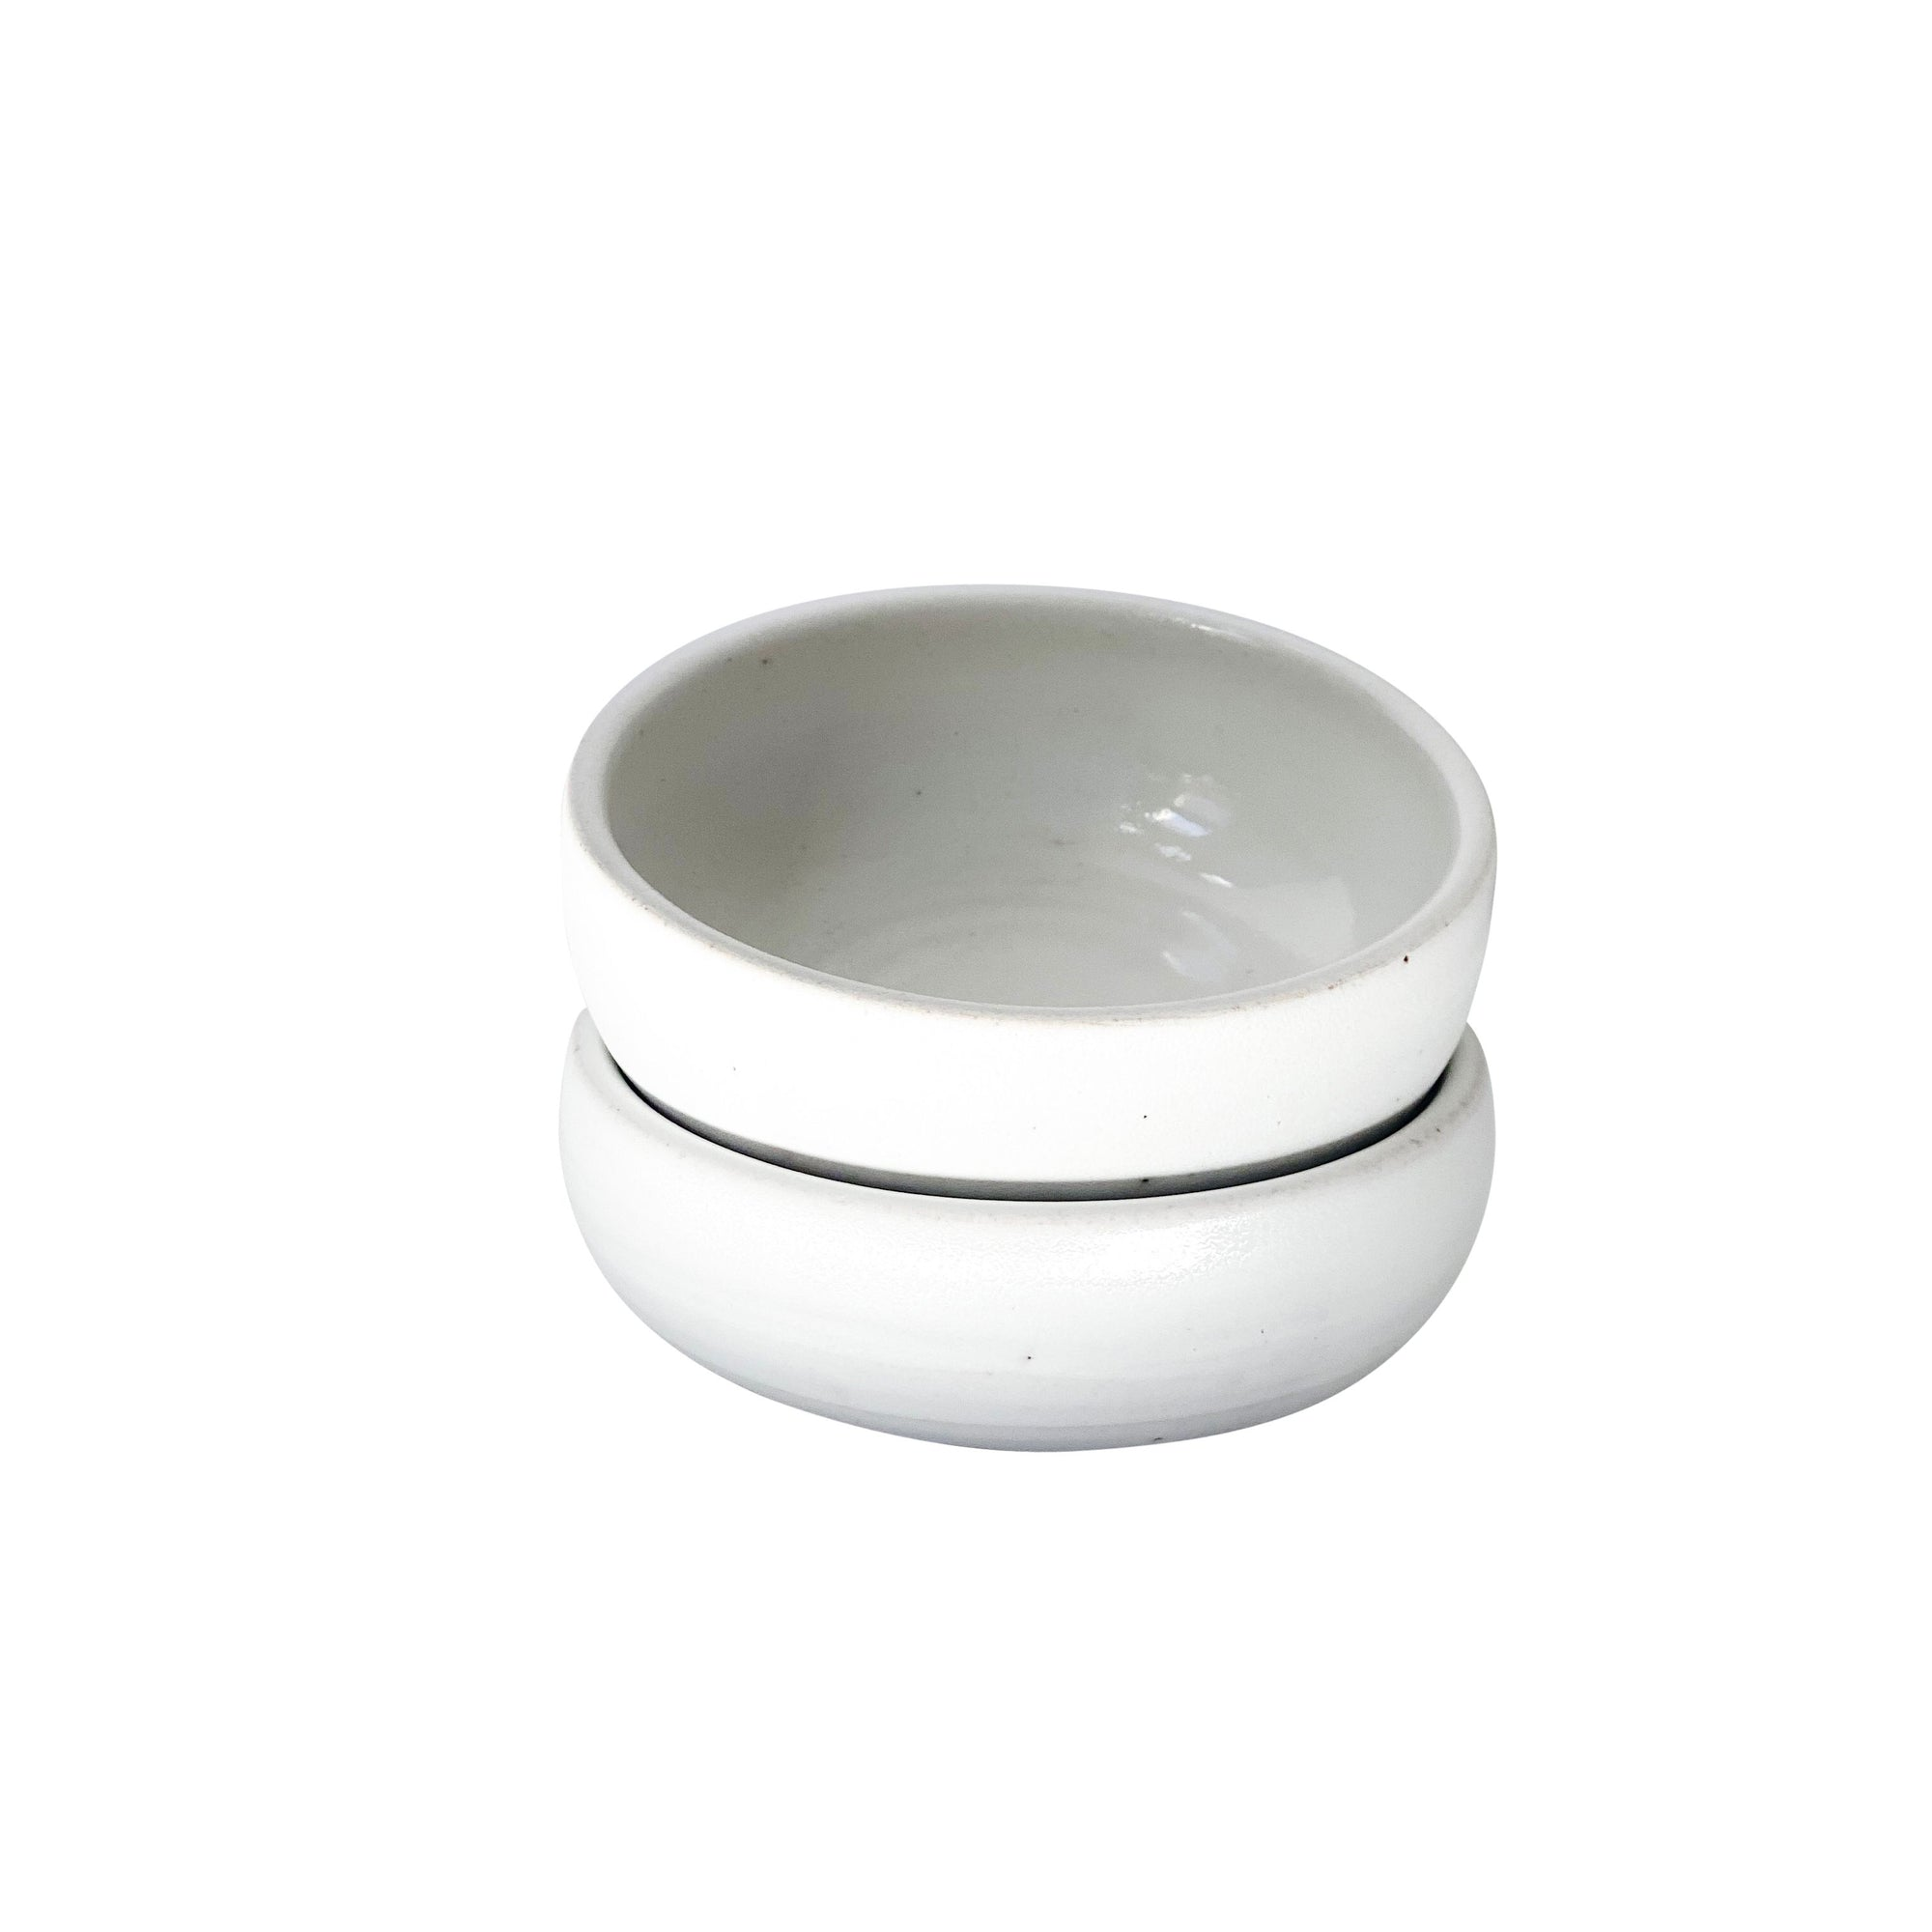 RV Pottery Ingredient Bowl- 2 Finishes